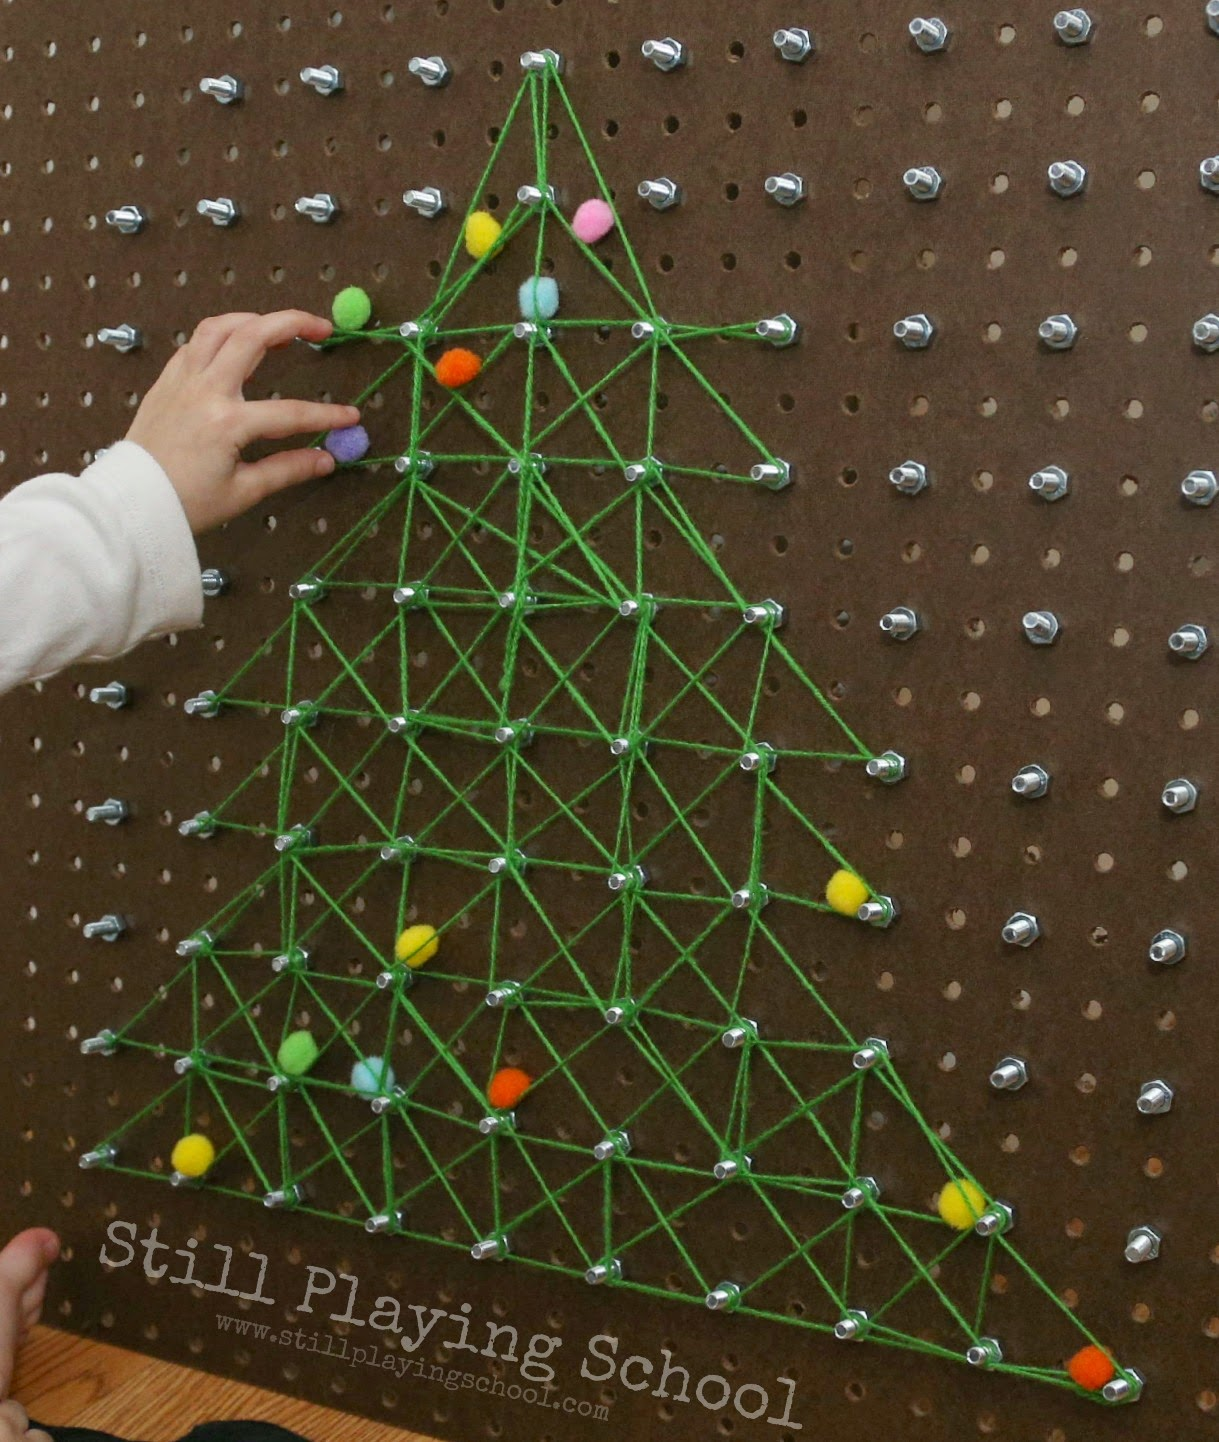 Christmas Tree Geoboard Hands On Math Activity For Kids Still